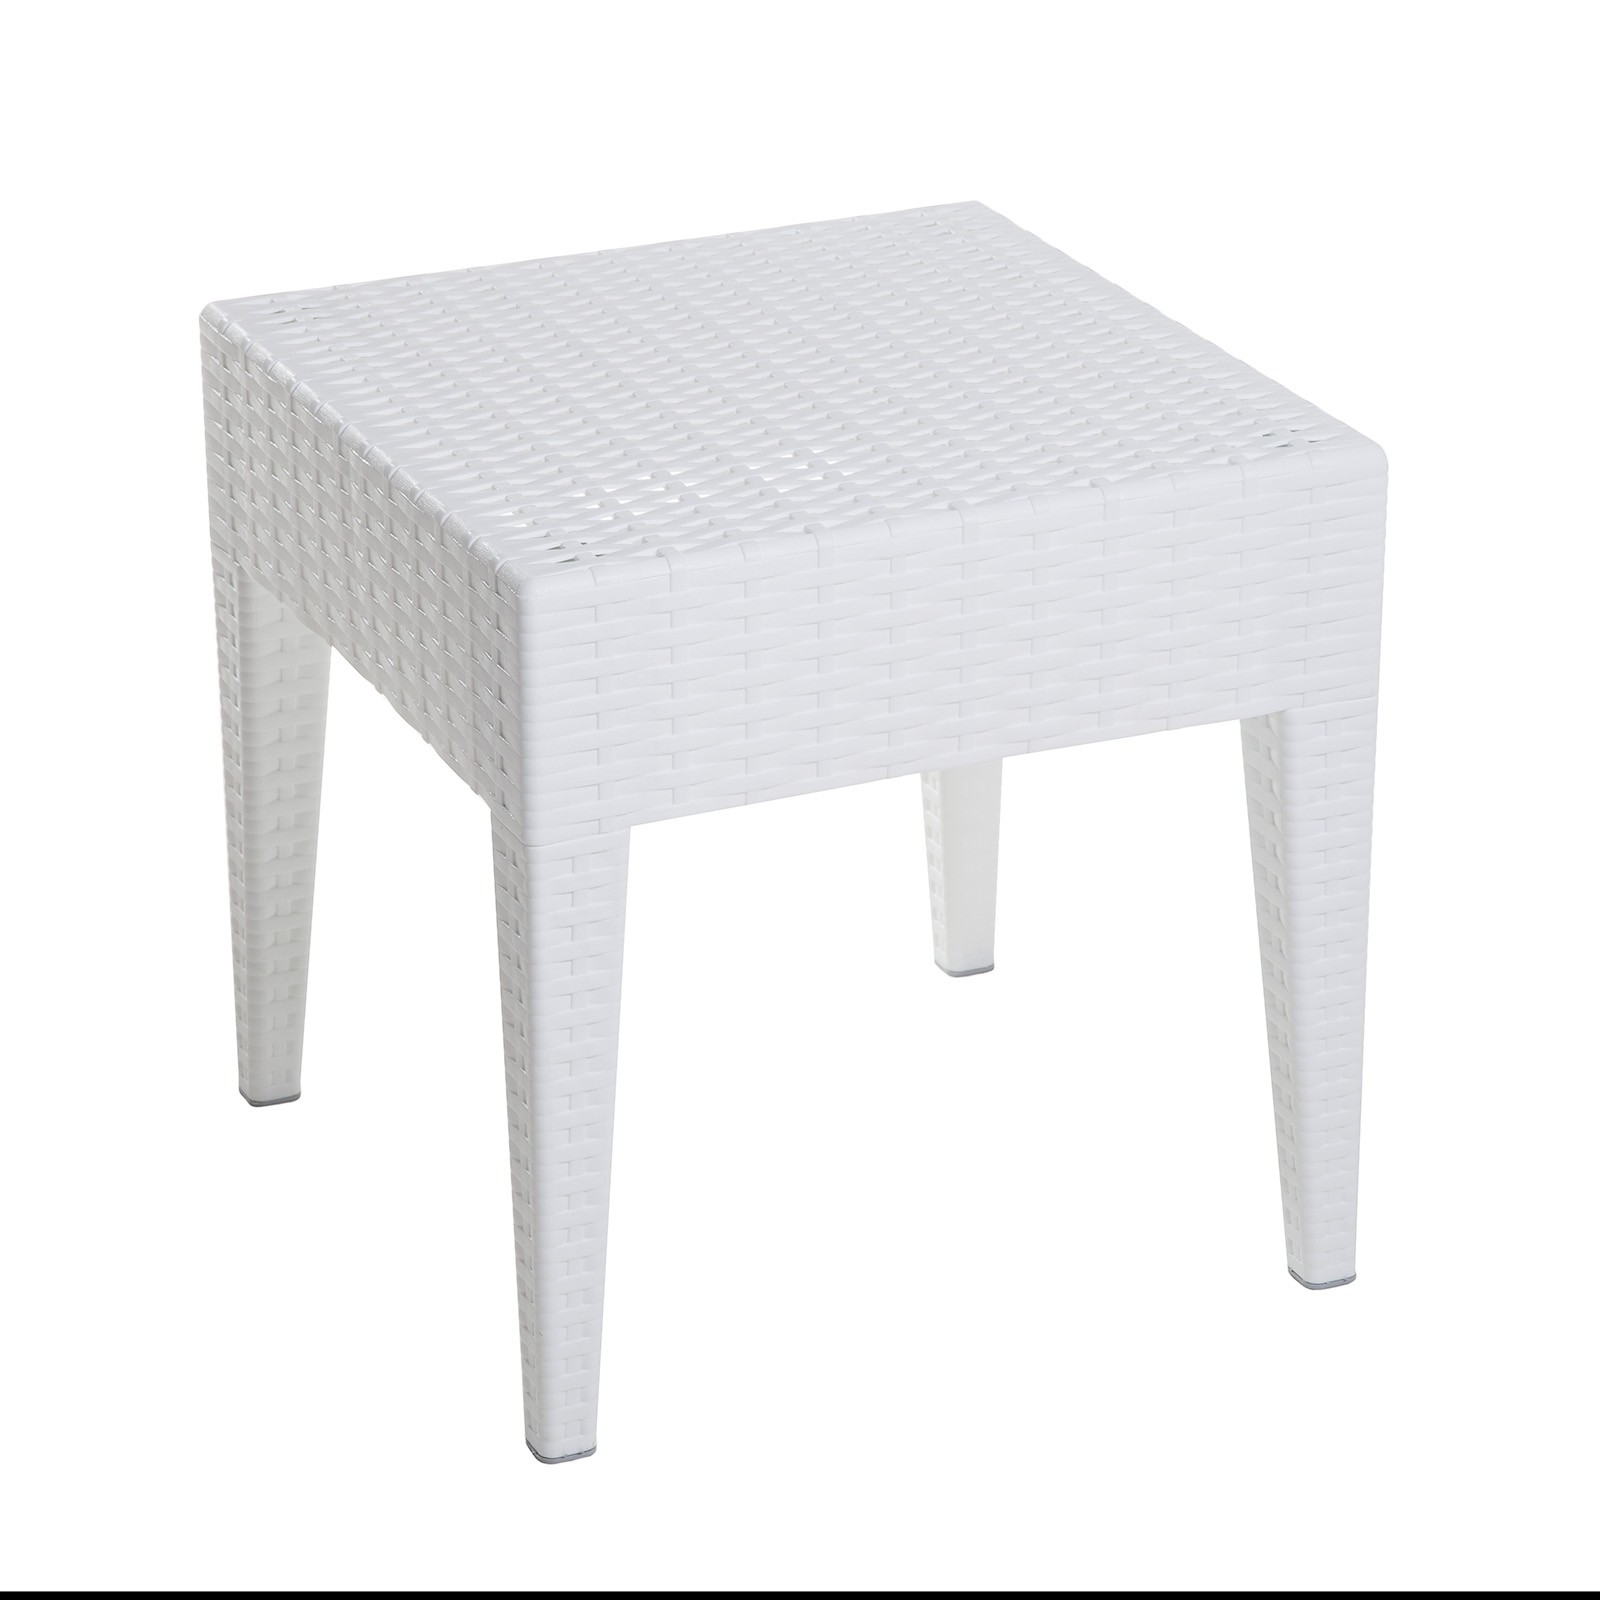 the fantastic cool white patio end table jockboymusic unique outdoor side simple glass tables with storage dog plans modern high chair unfinished accent ashley furniture chairs